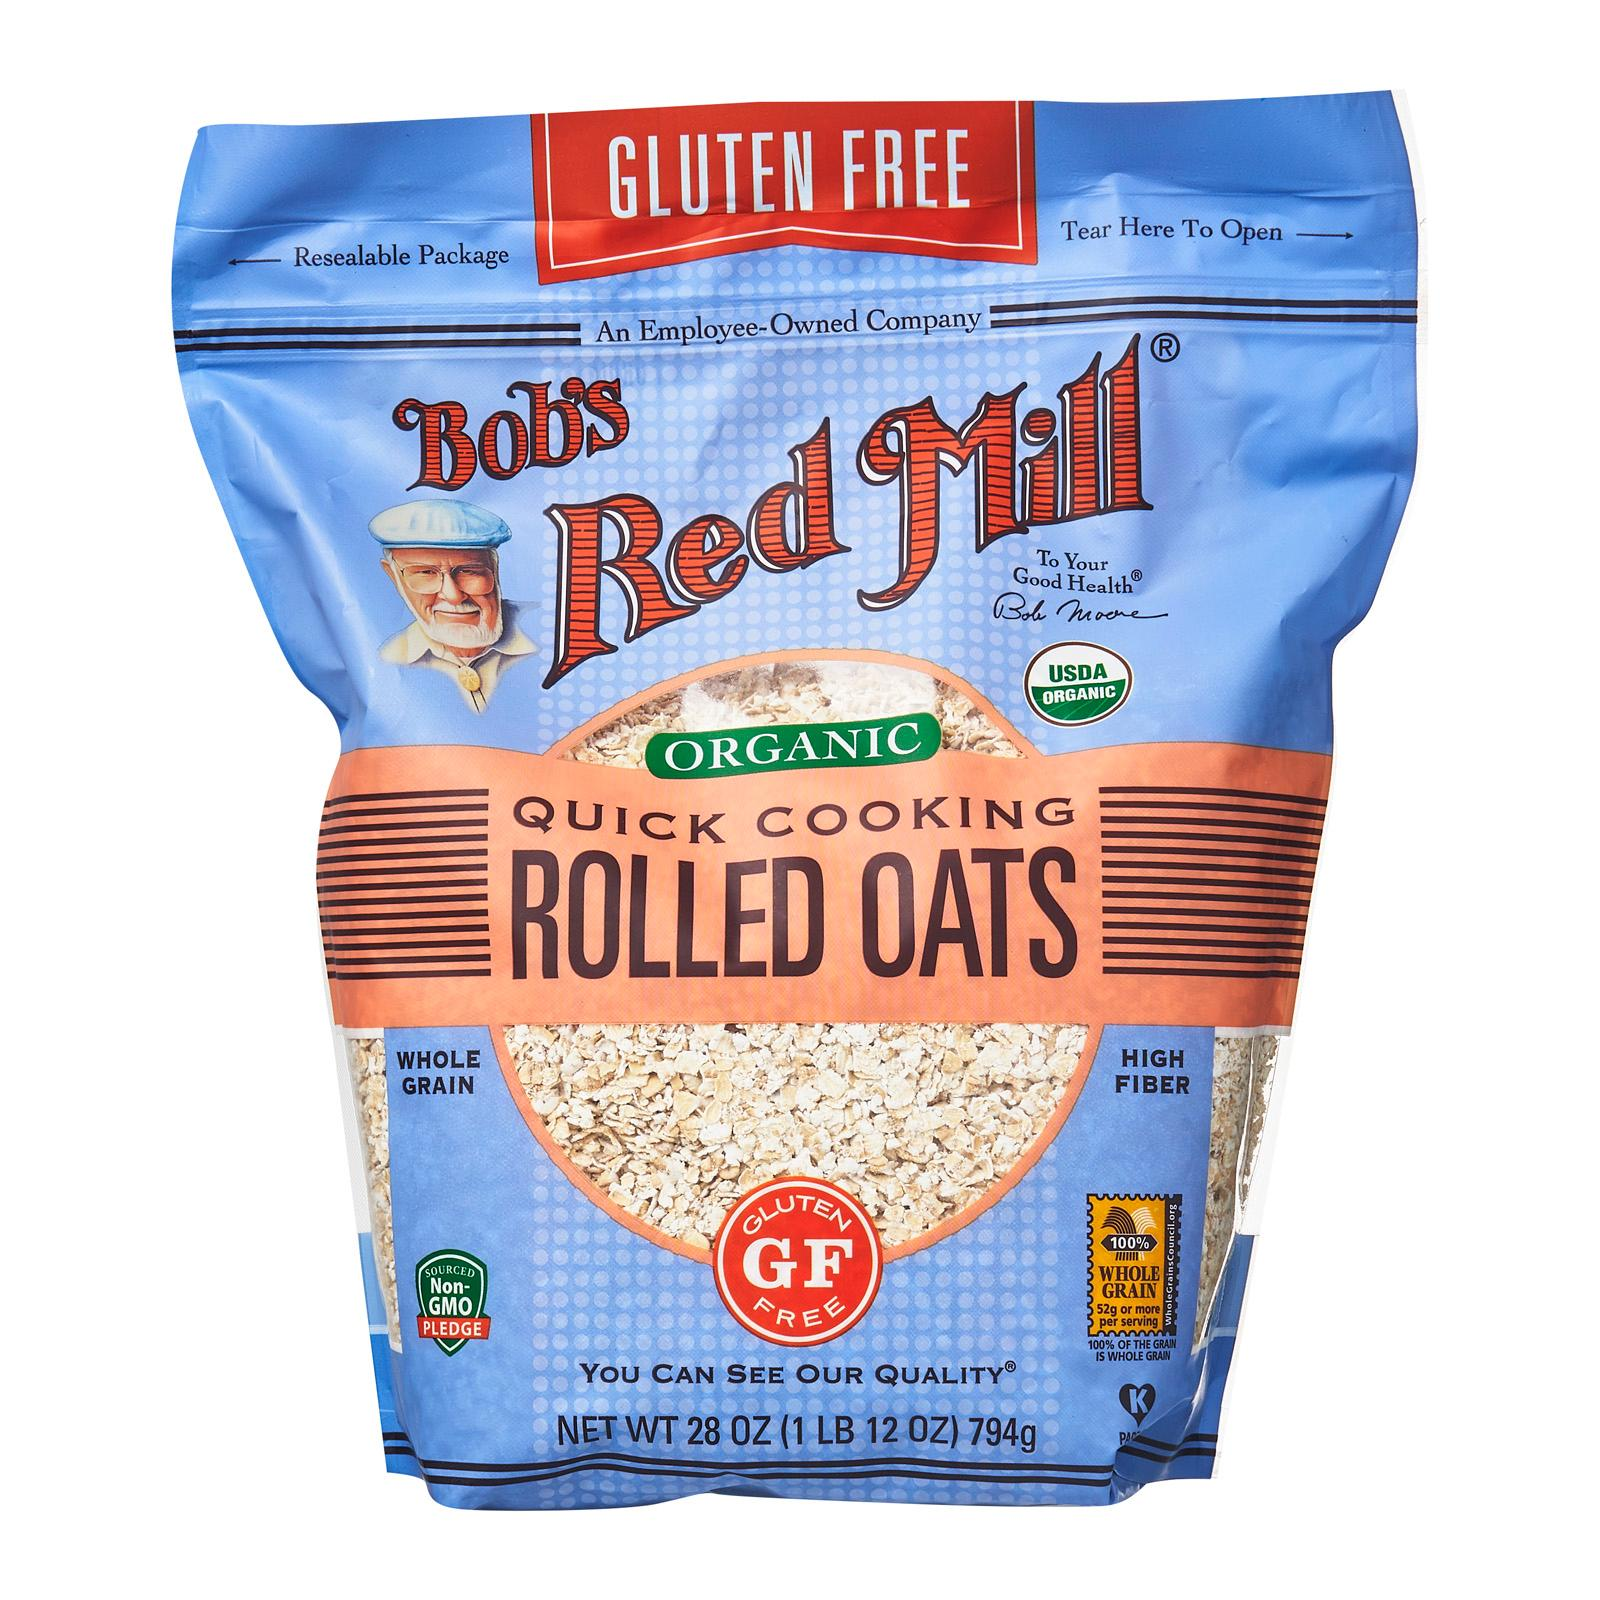 BOB'S RED MILL Gluten-Free Quick Cooking Rolled Oats Whole Grain